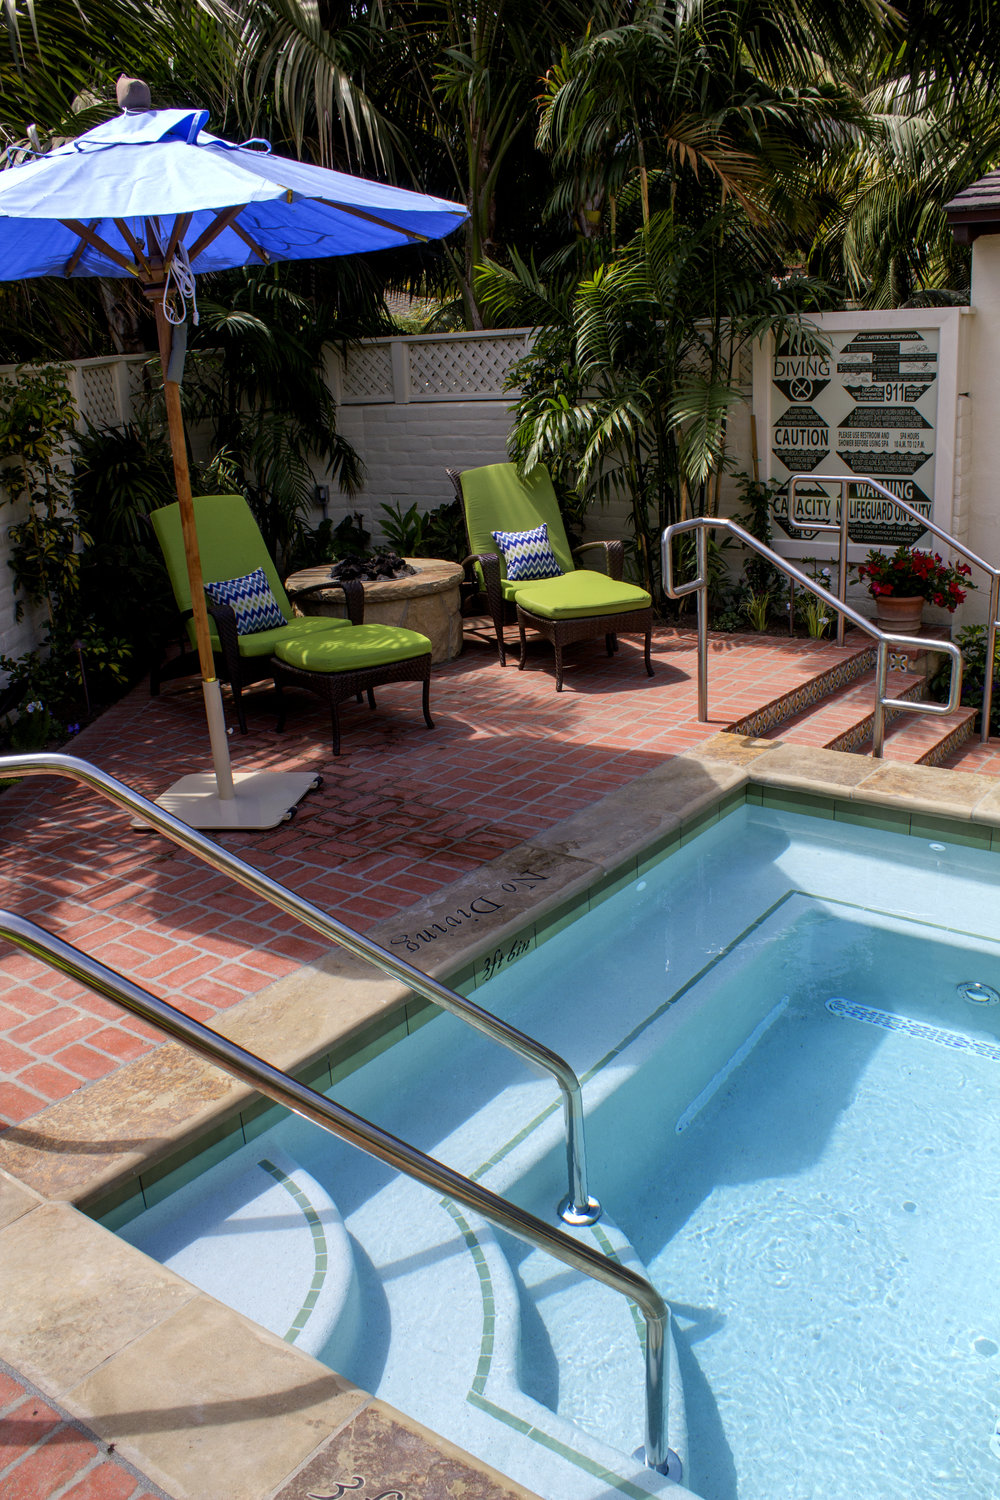 Spa_patio_IMG_0024.jpg